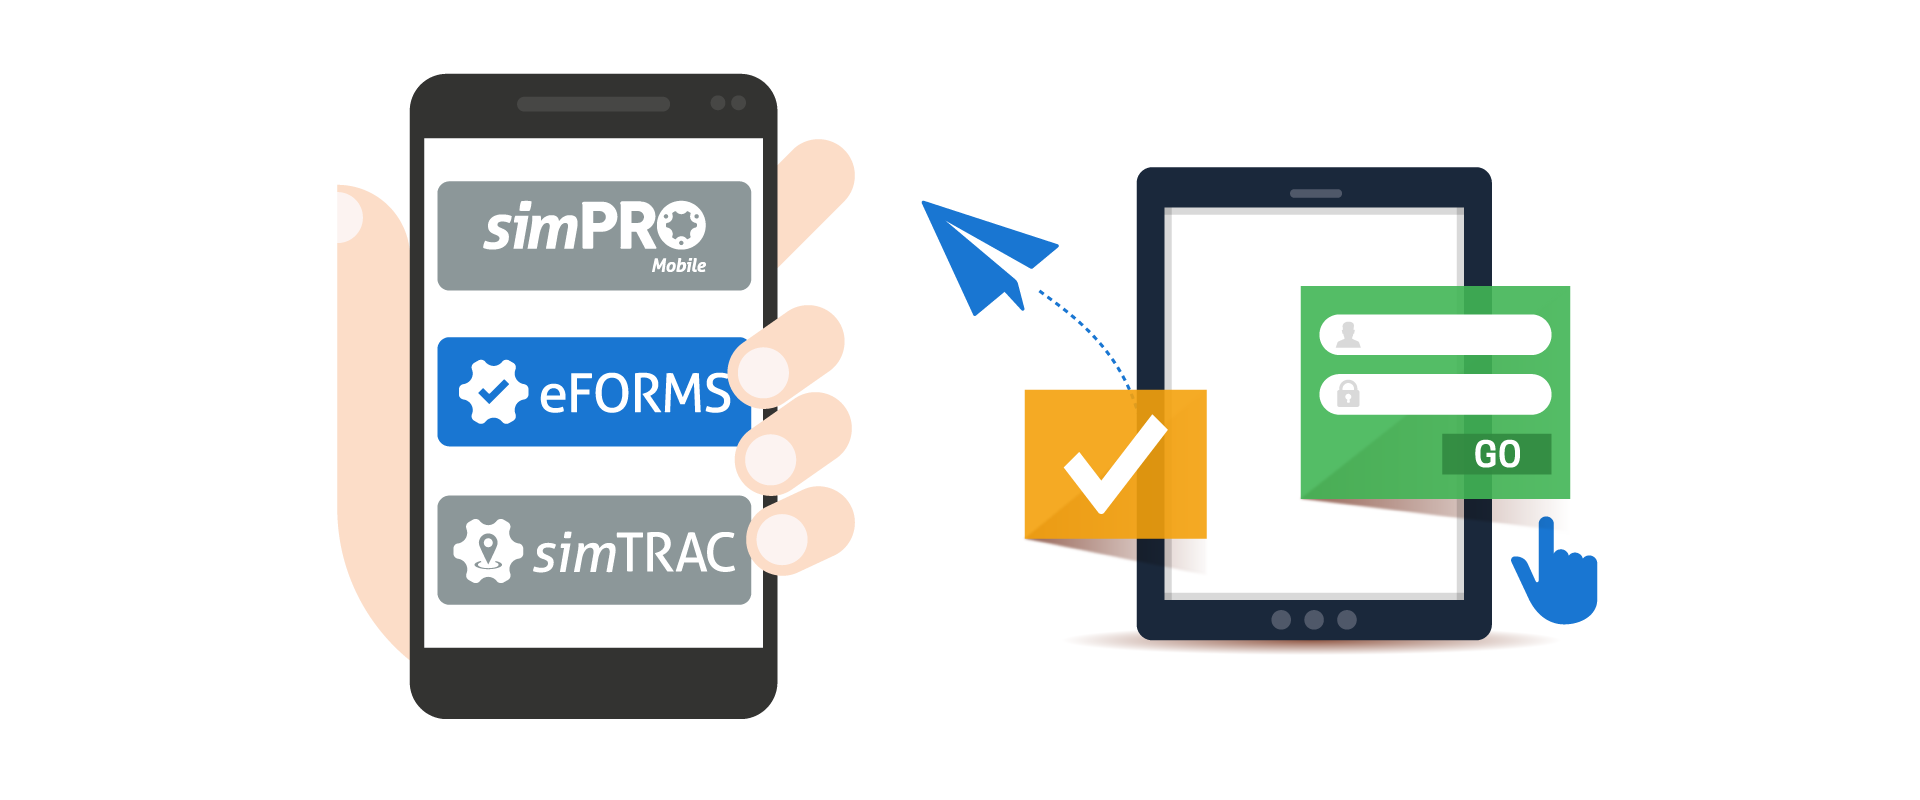 simPRO eforms user interaction